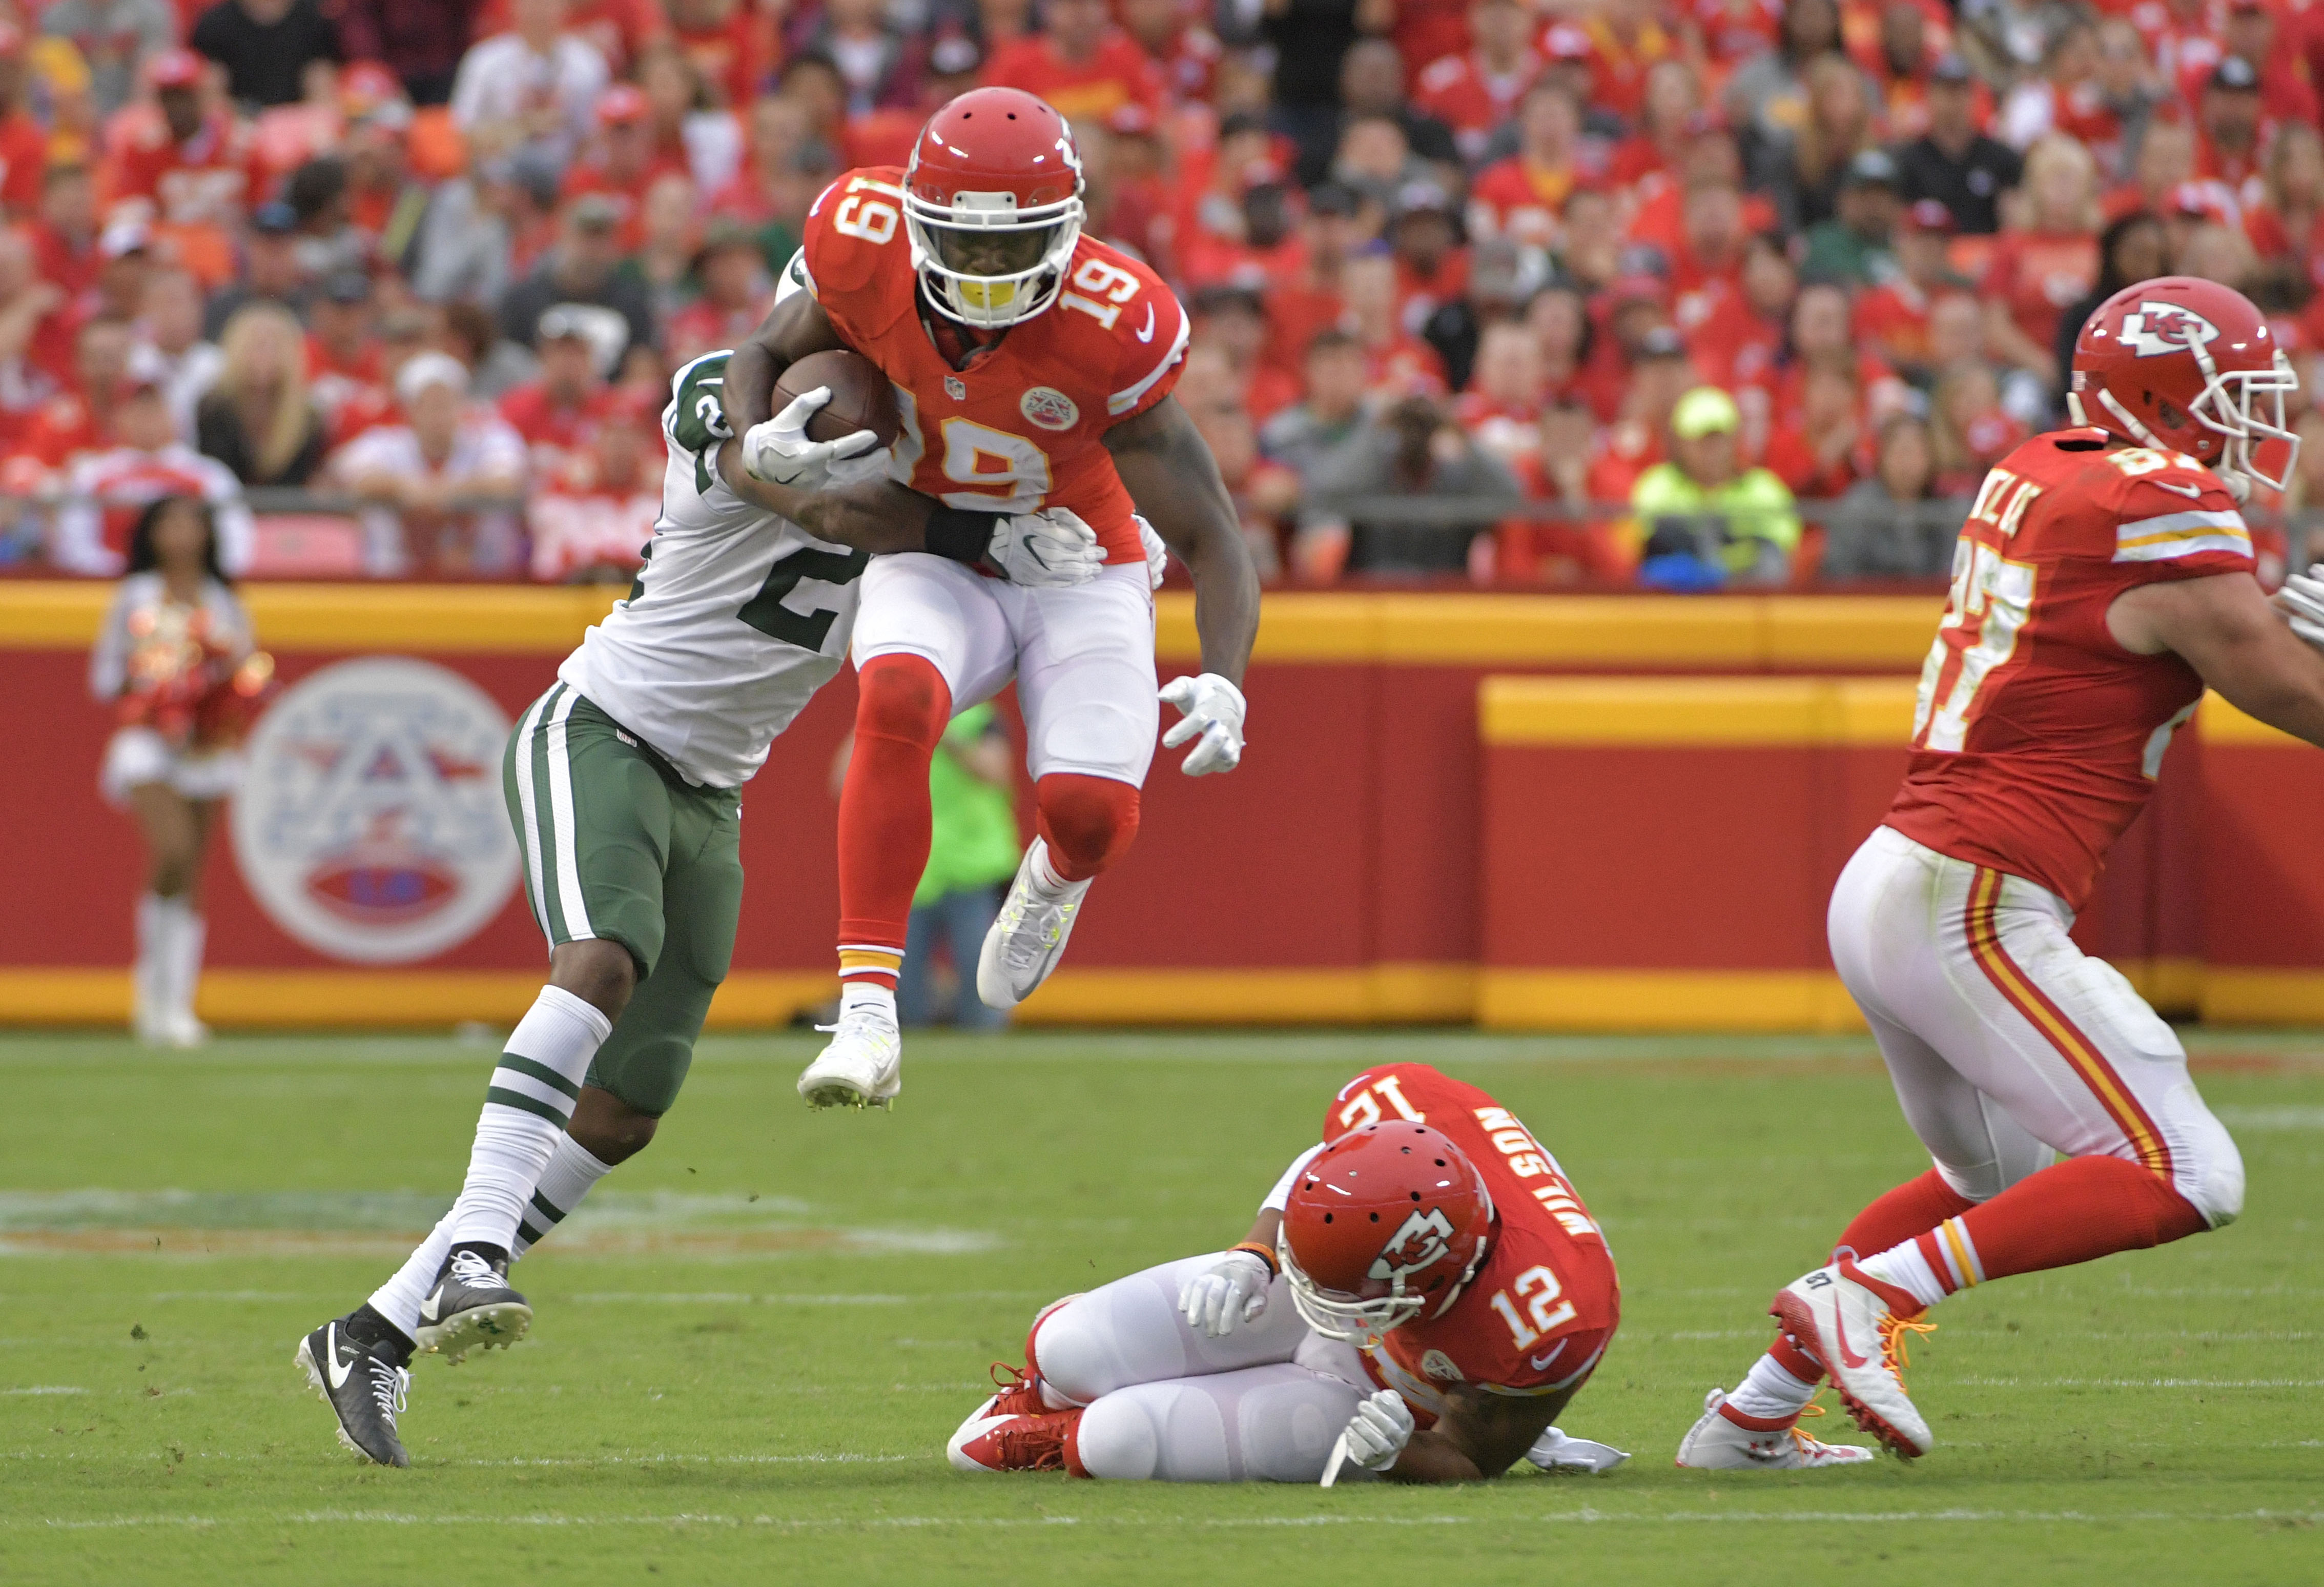 Remember. The Chiefs do have a receiver, and Maclin is a good one.